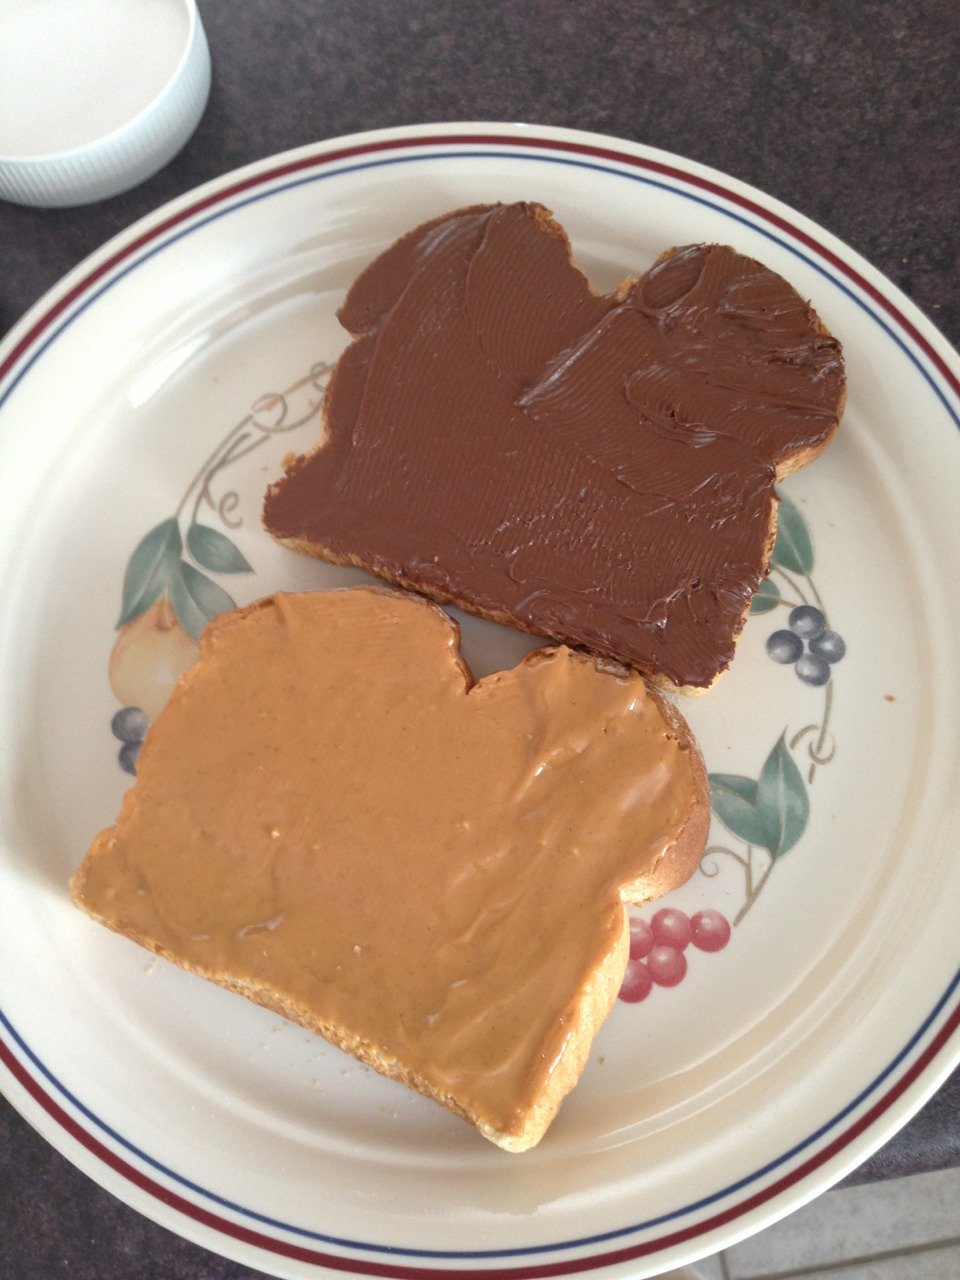 1) Toast your bread 2) Spread peanut butter on 1 toast 3) Spread Nutella on the other toast